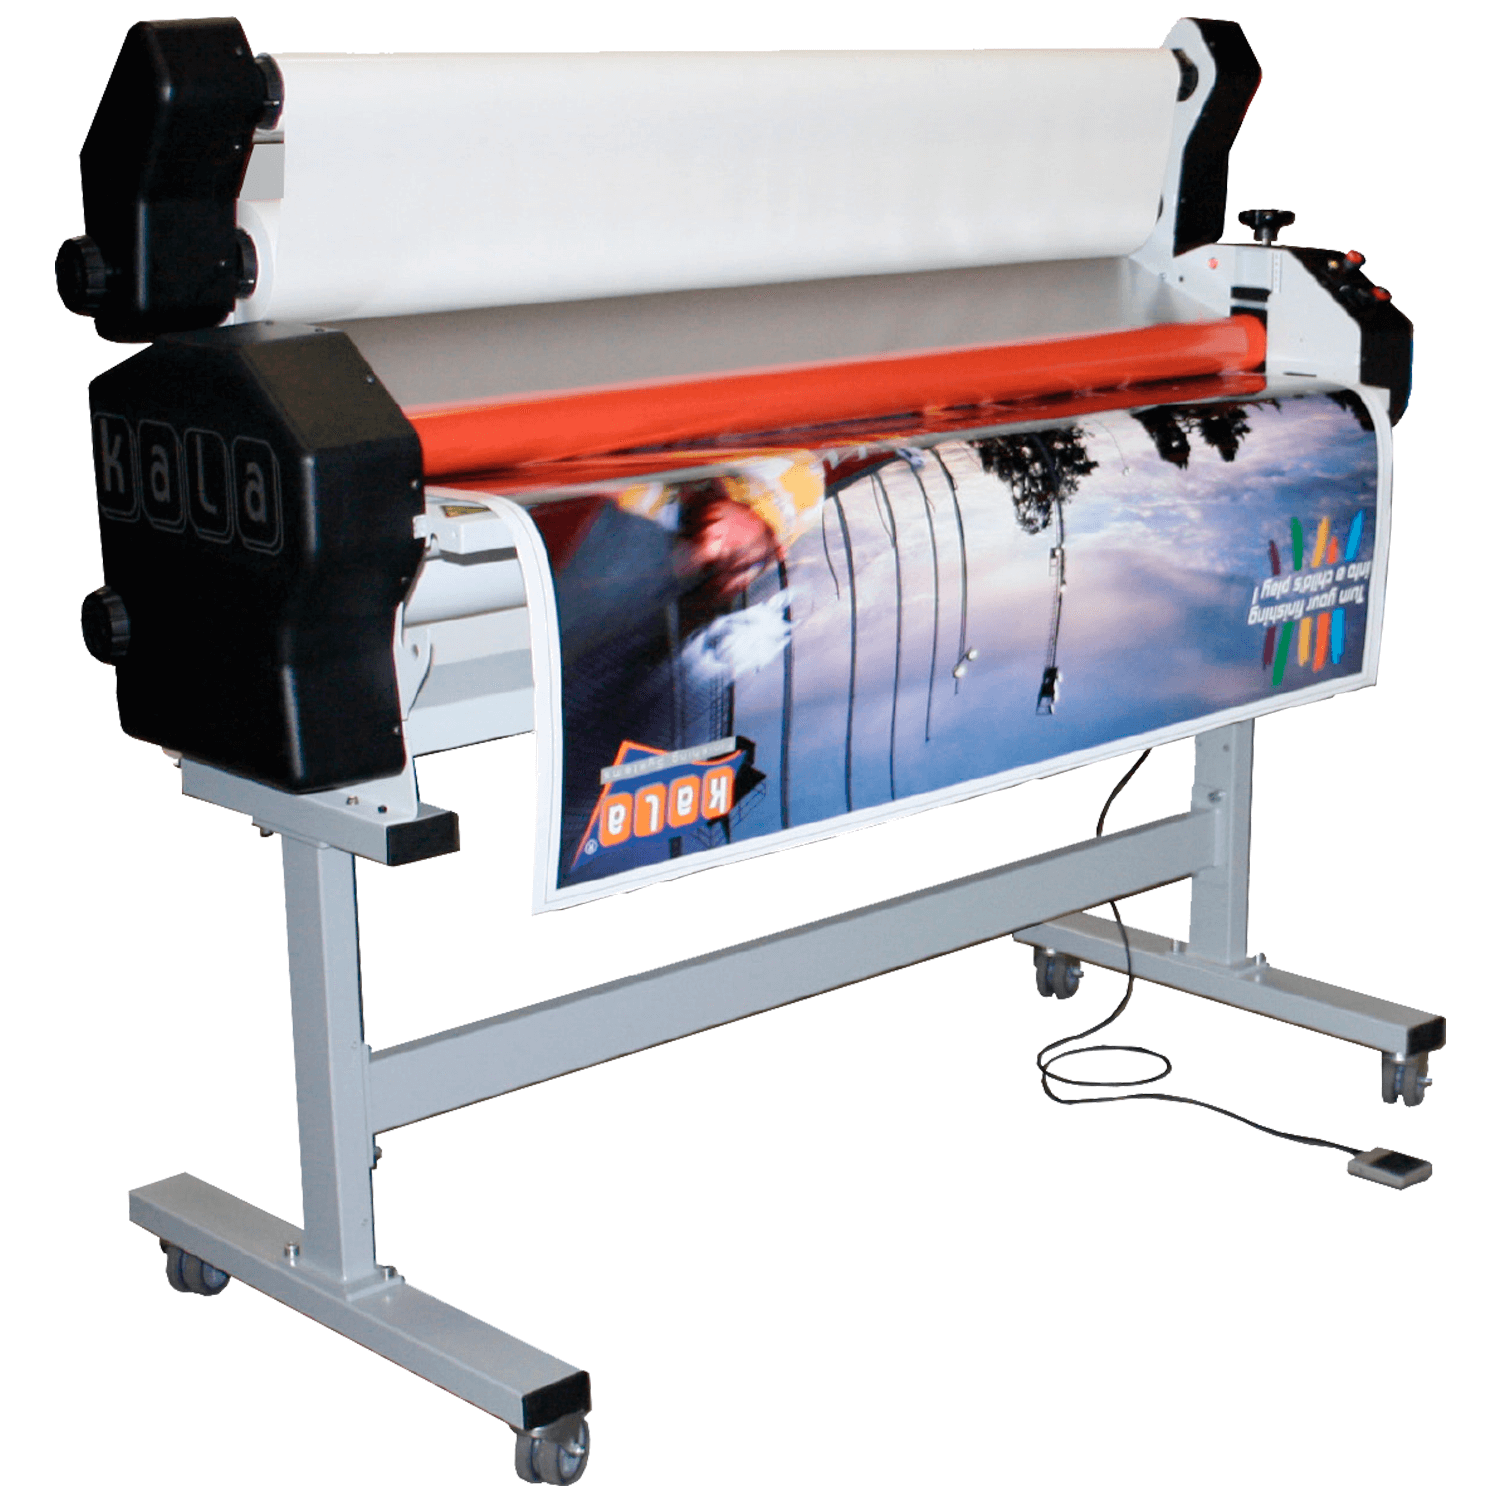 A Graphic Roll Laminator Use Large Rolls Of Film To Laminate Documents That Are Of Just About Any Size And A Number Of Documen Plastic Sheets Marketing Sheets